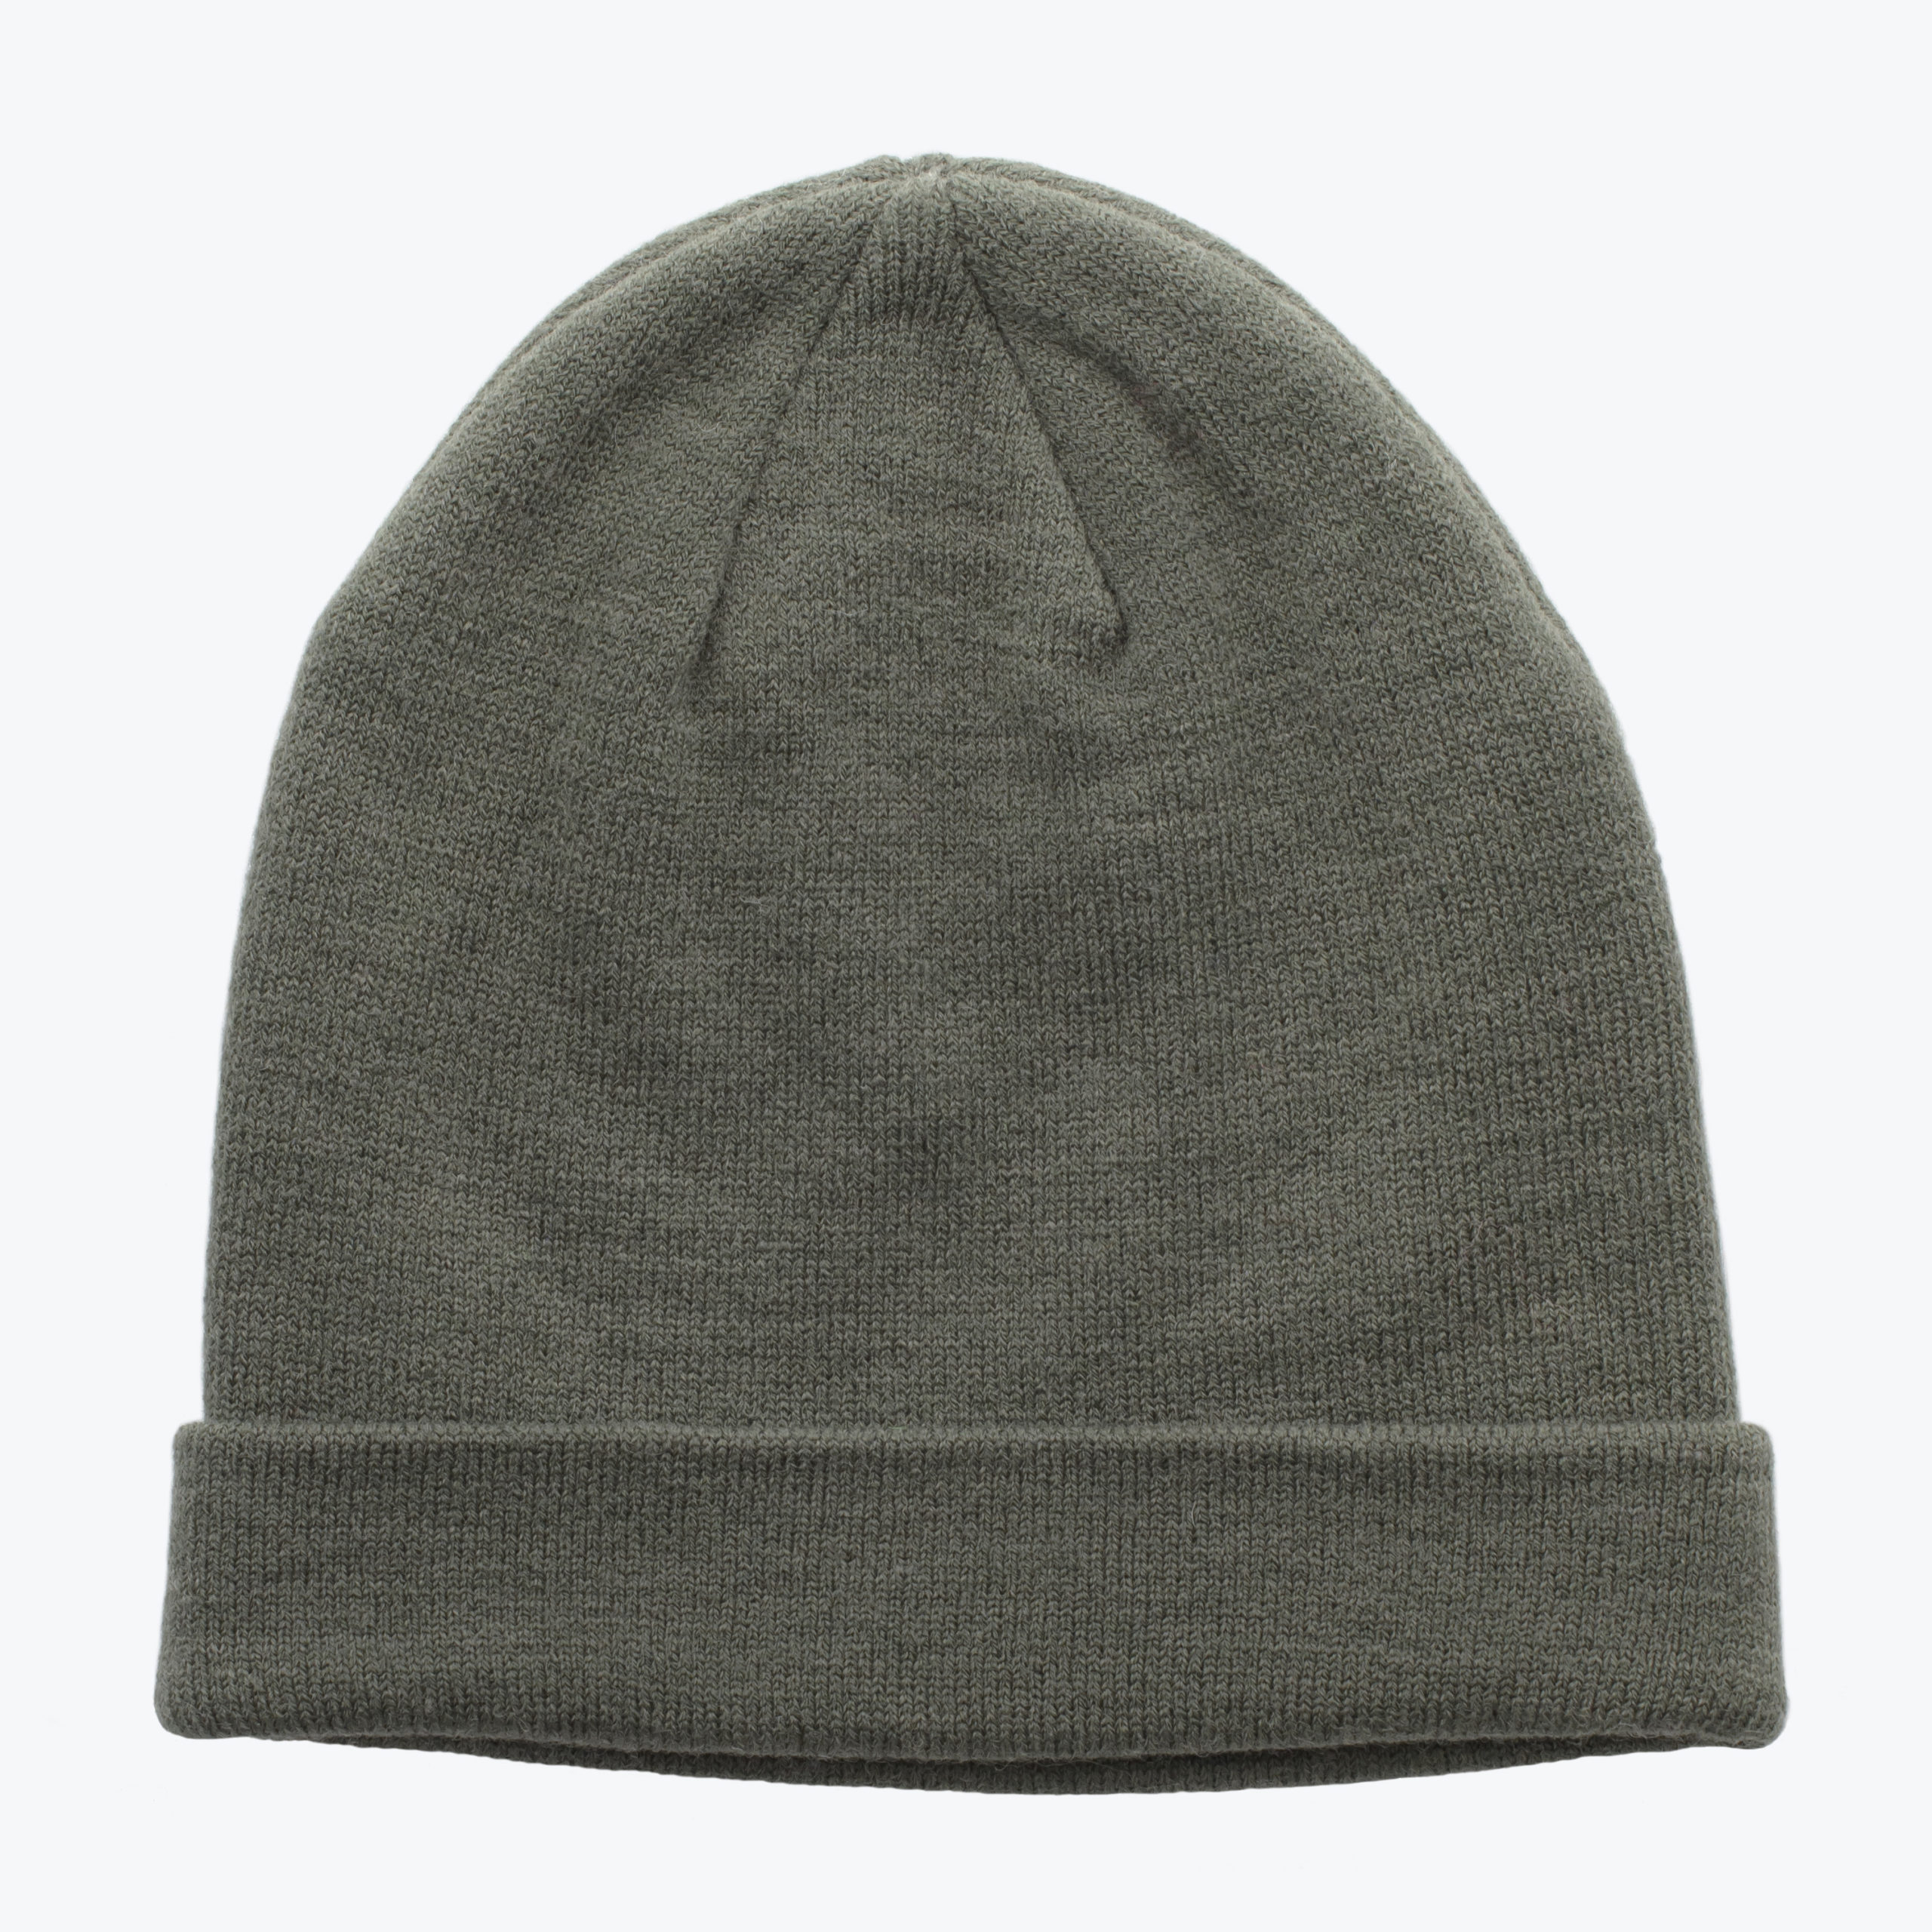 MEN'S LIGHT COTTON BEANIE-KHAKI